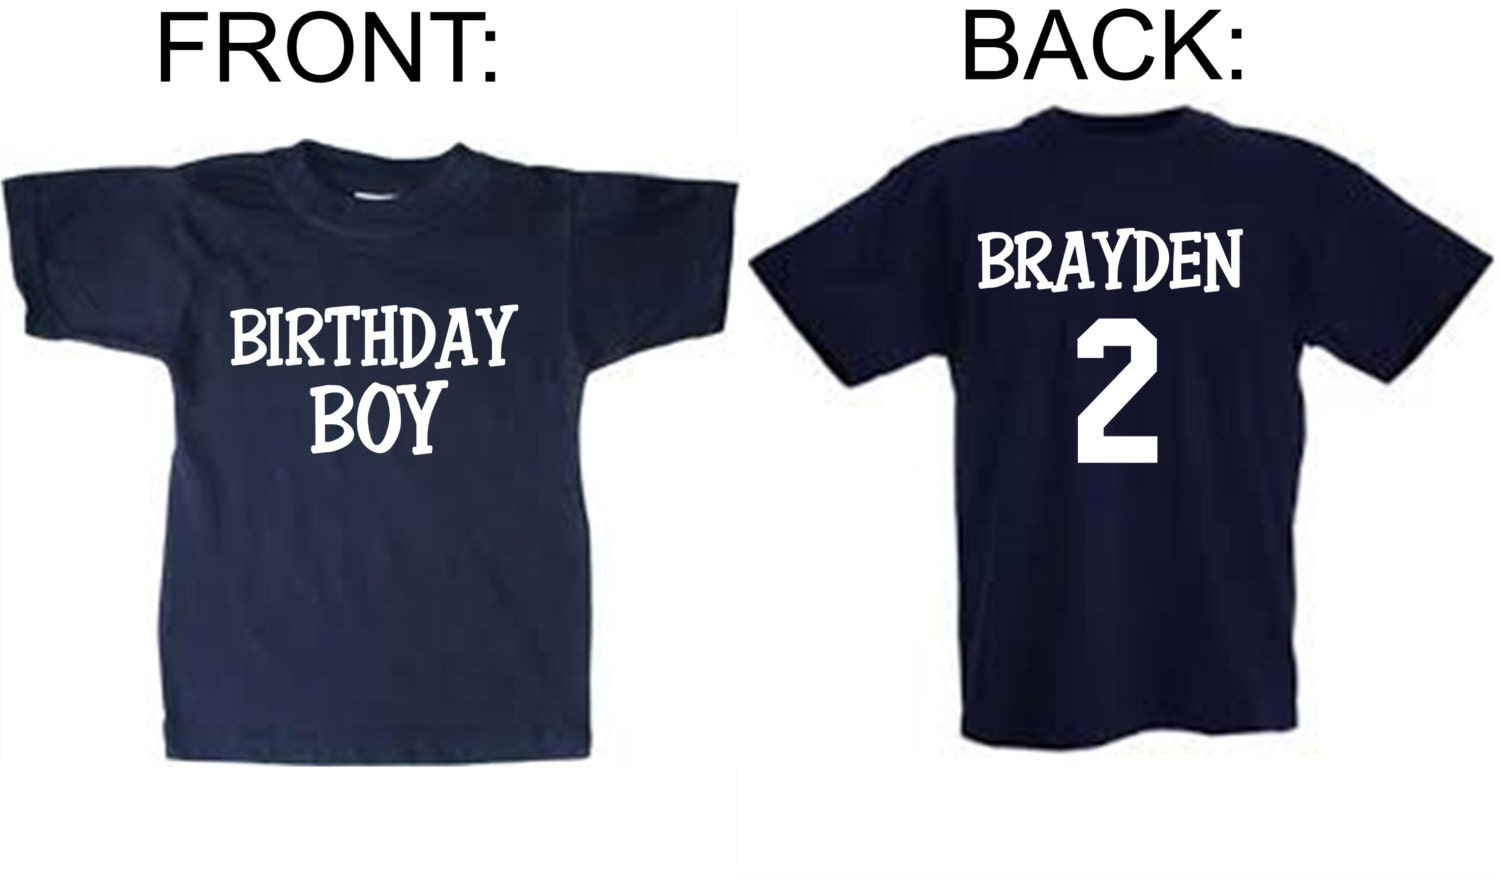 Kids Personalized Birthday Gift For Person Named Randall T Shirt 12 Heather Blue Personalized tee shirt gift for Randall for his Bday, for any occasion. Simple gift .